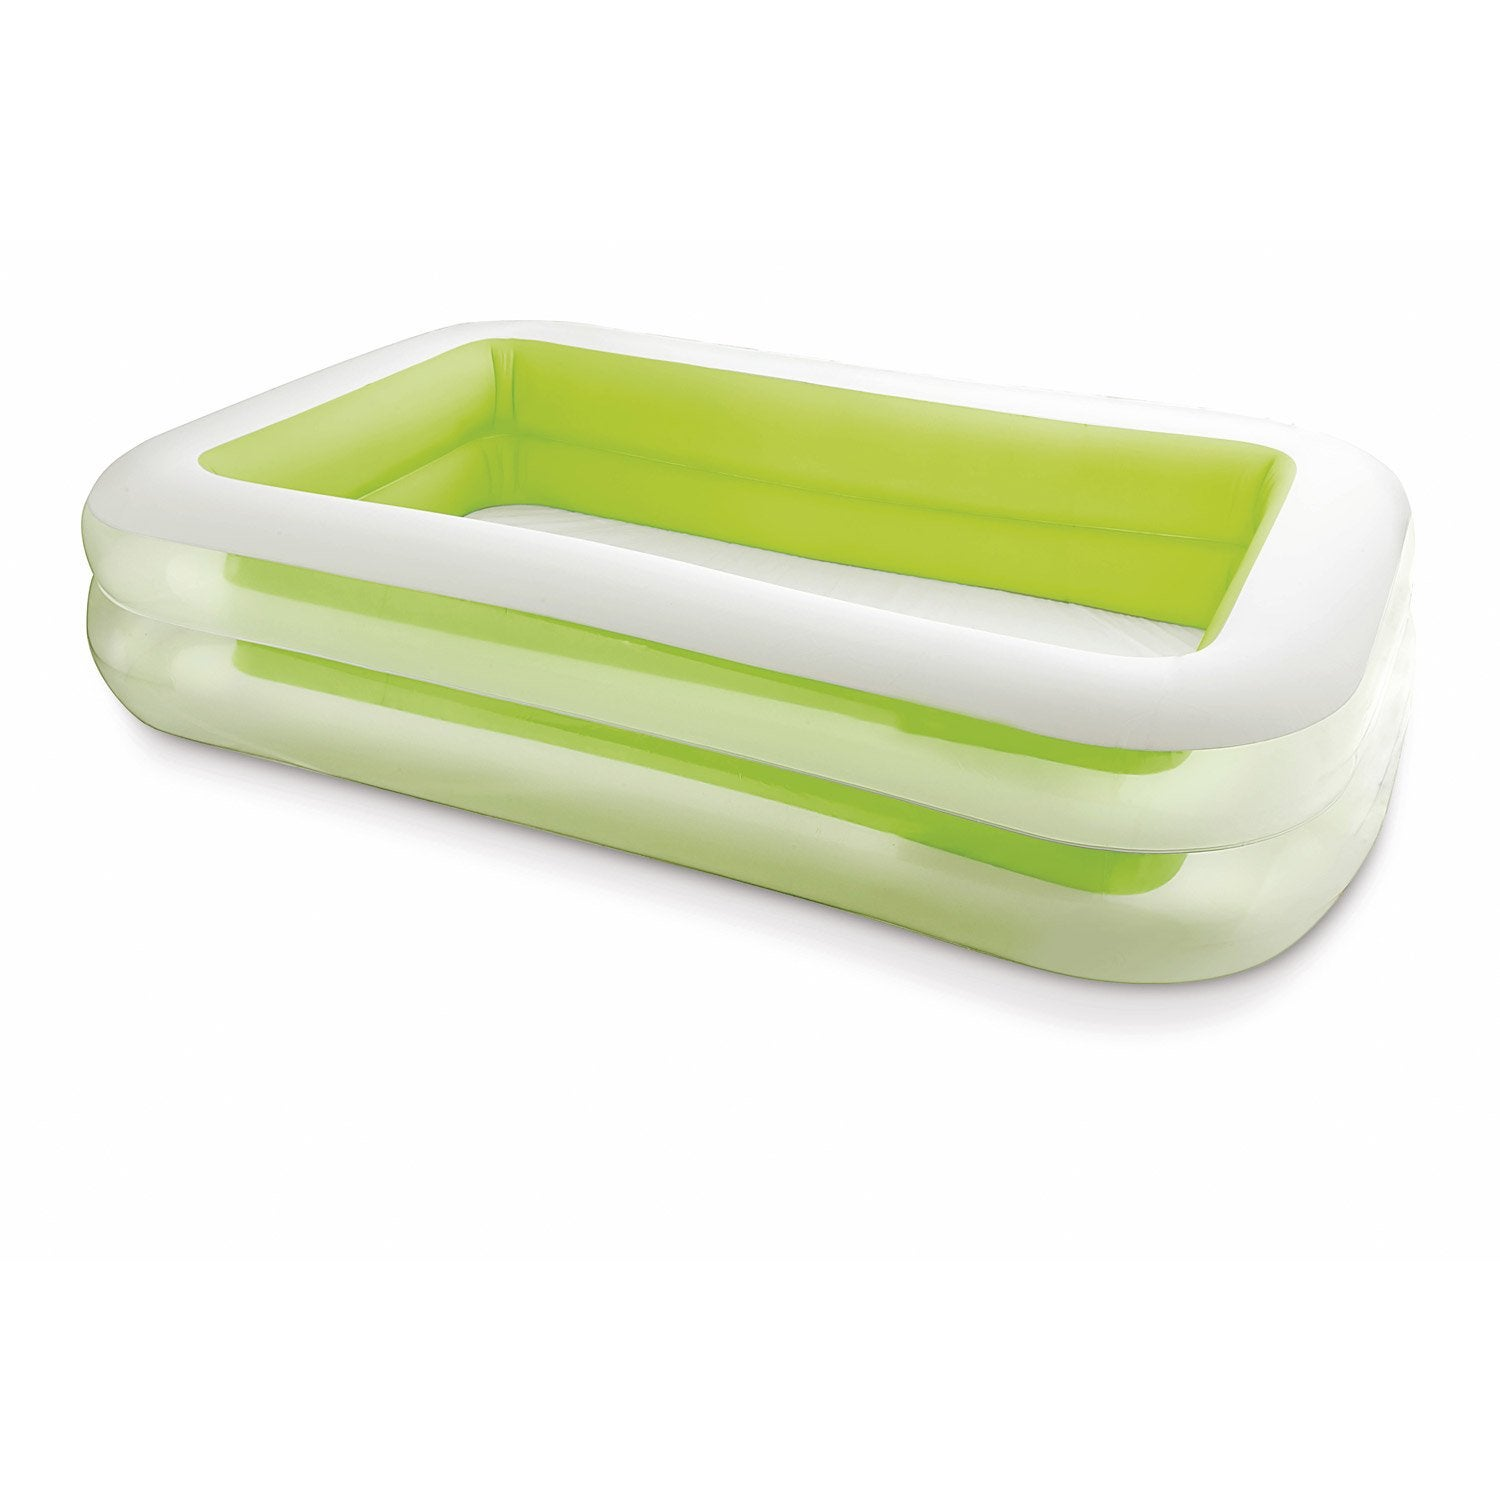 Piscine rectangulaire gonflable for Piscine hors sol 1m30